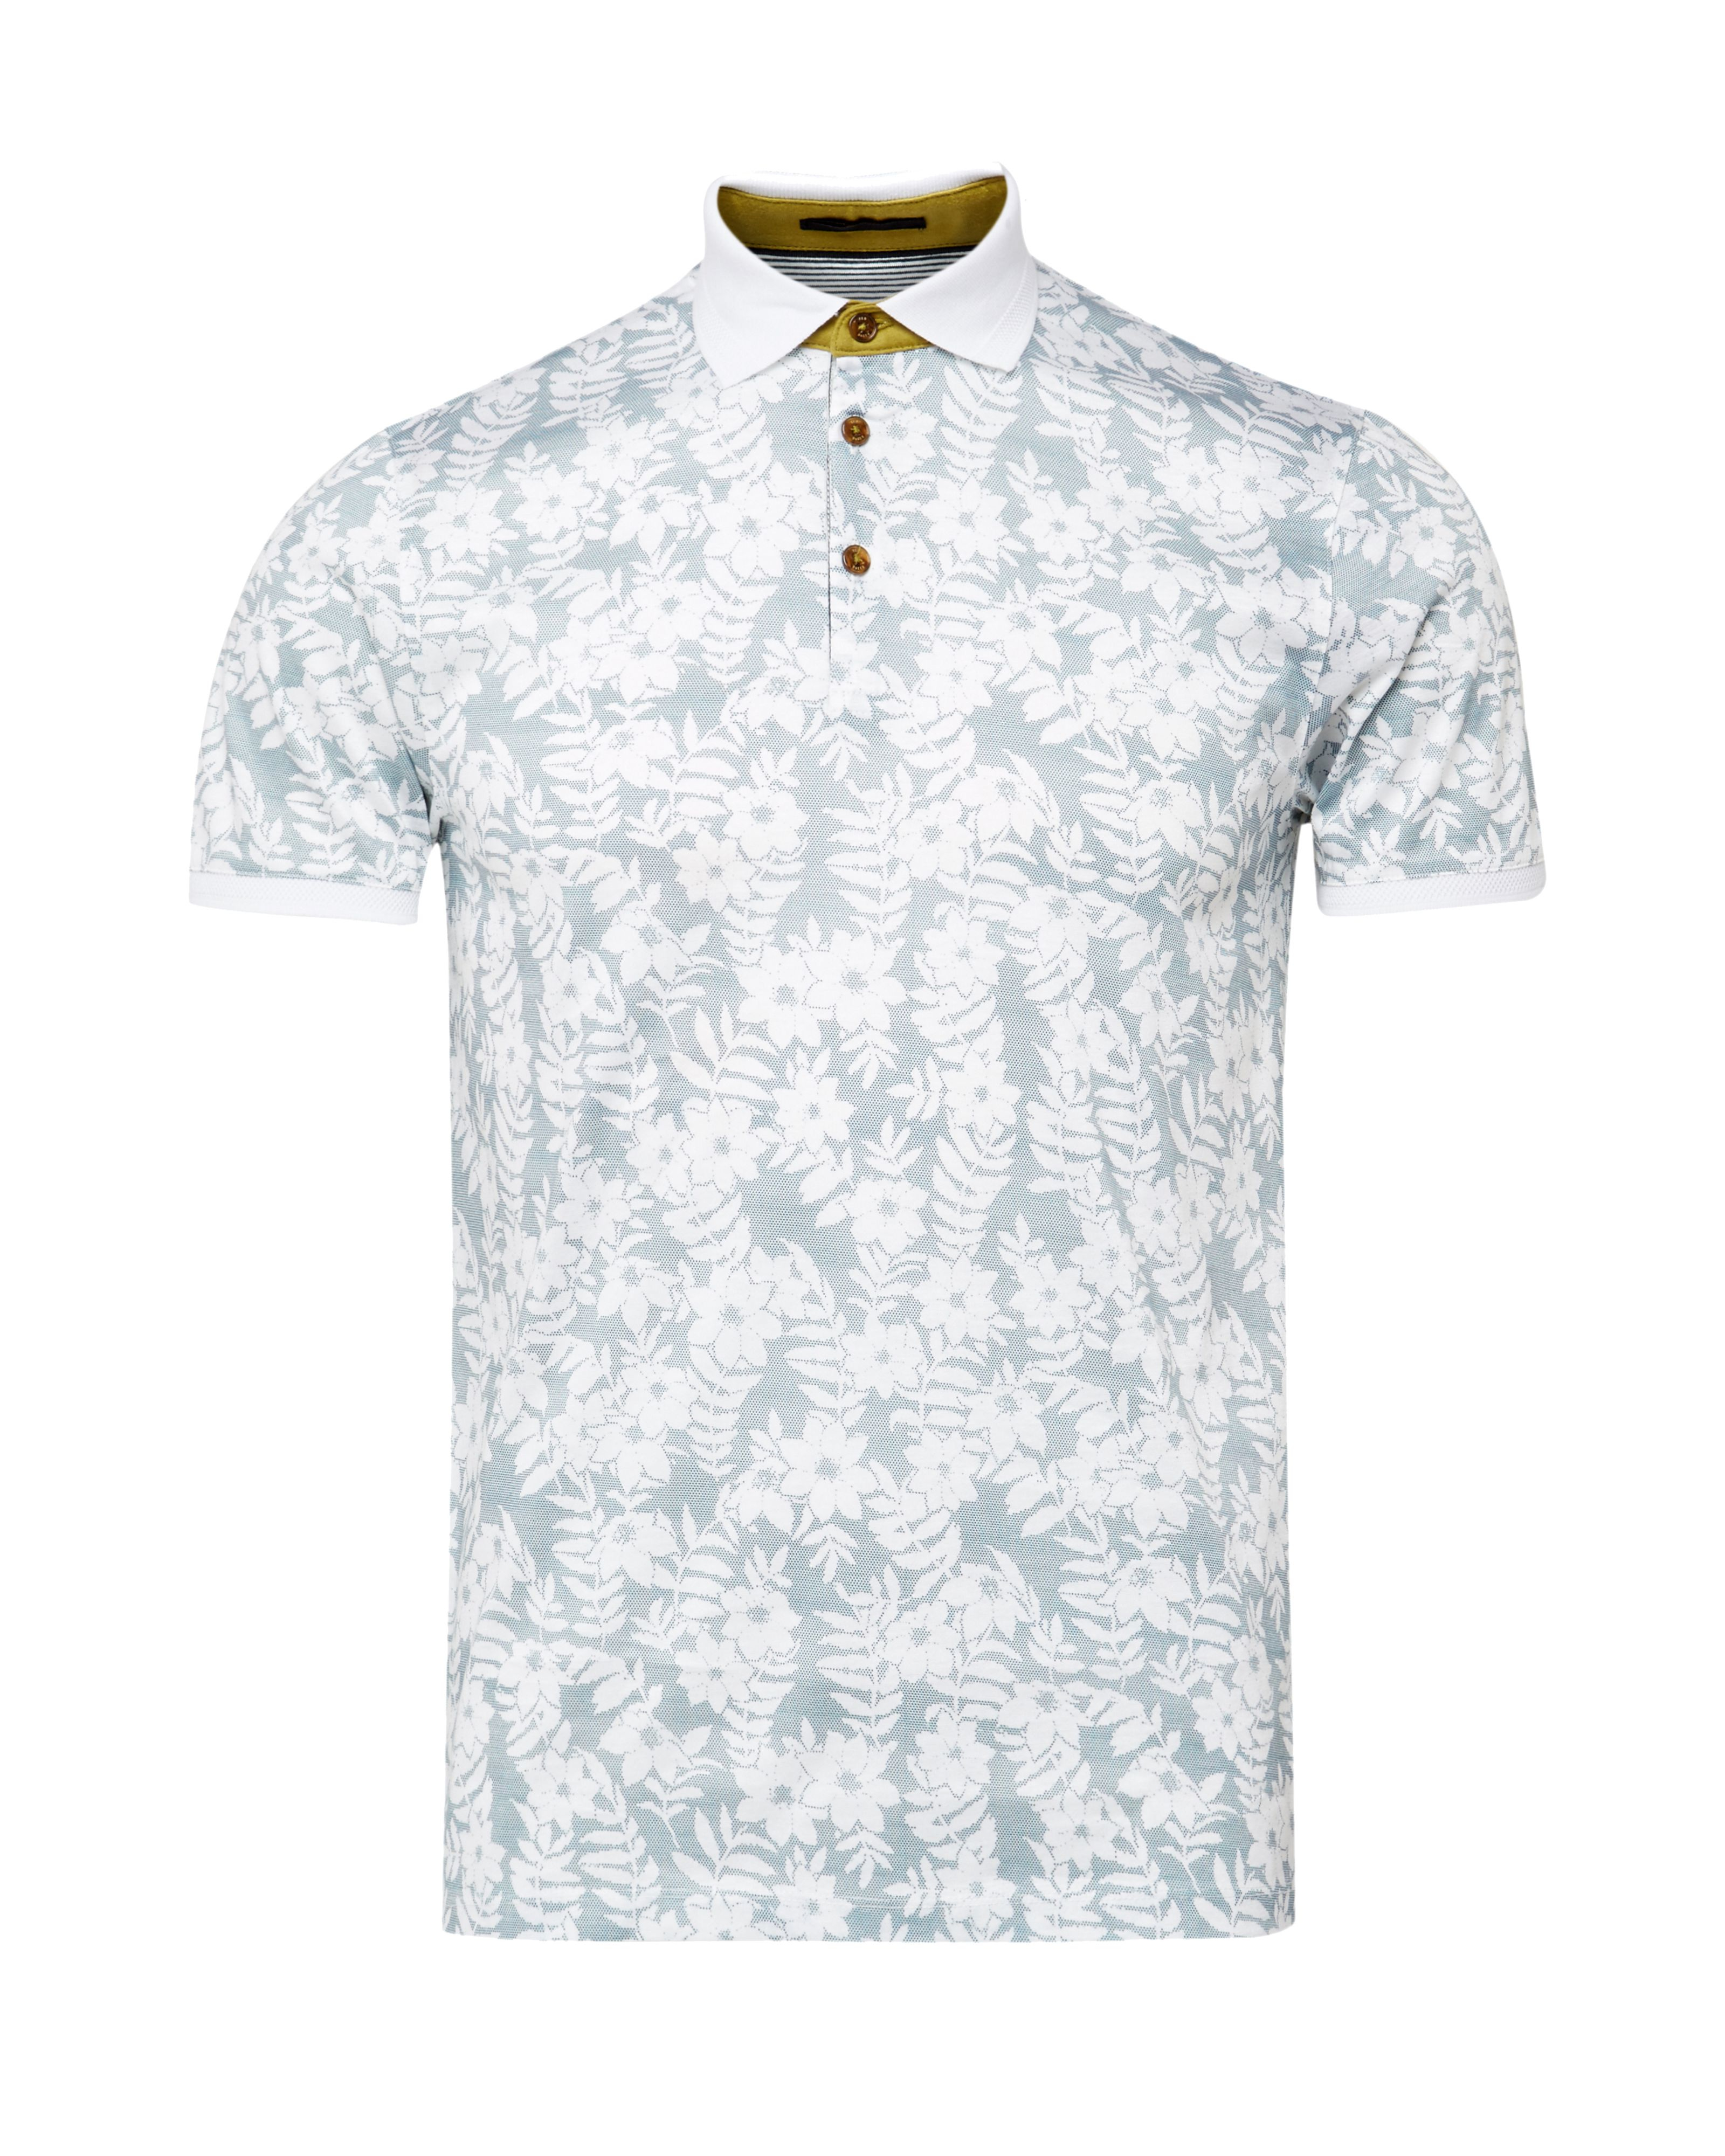 Ted baker bopp floral print polo shirt in blue for men lyst for Ted baker floral print shirt